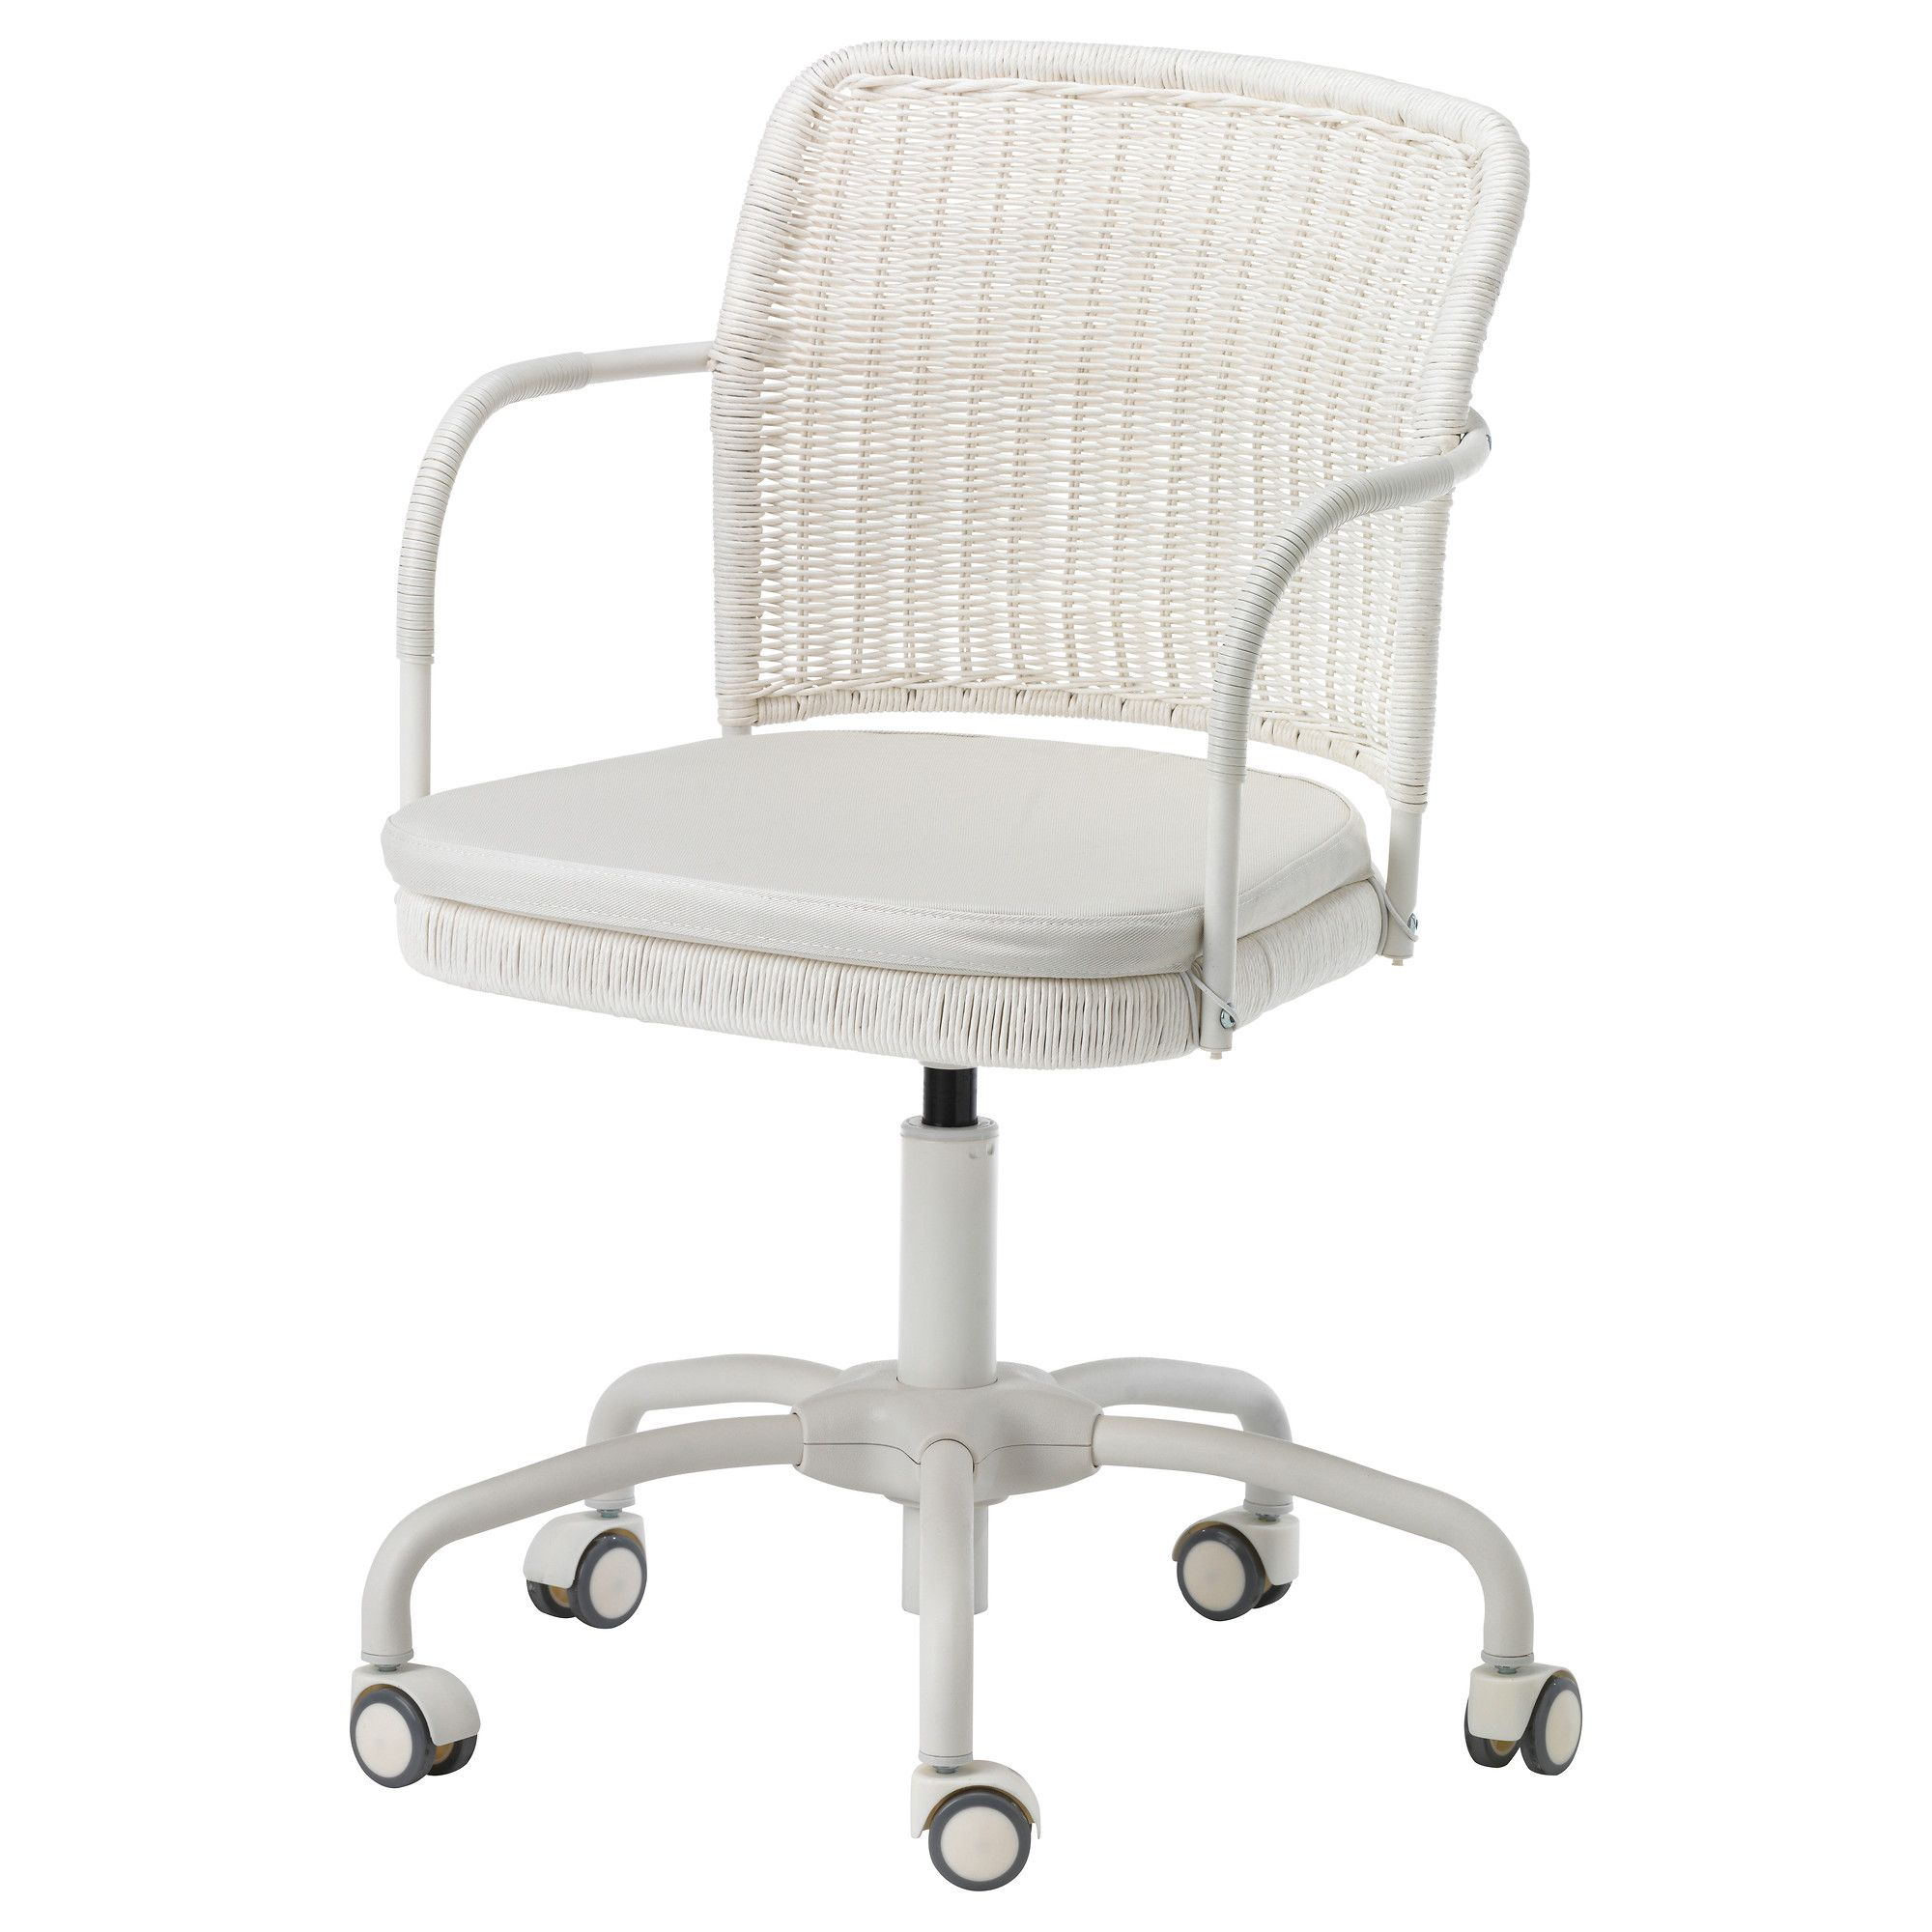 gregor swivel chair vittaryd white. IKEA - GREGOR, Swivel Chair, Vittaryd White, , You Sit Comfortably Since The Chair Is Adjustable In Height.The Casters Are Rubber Coated To Run Smoothly On Gregor White Pinterest